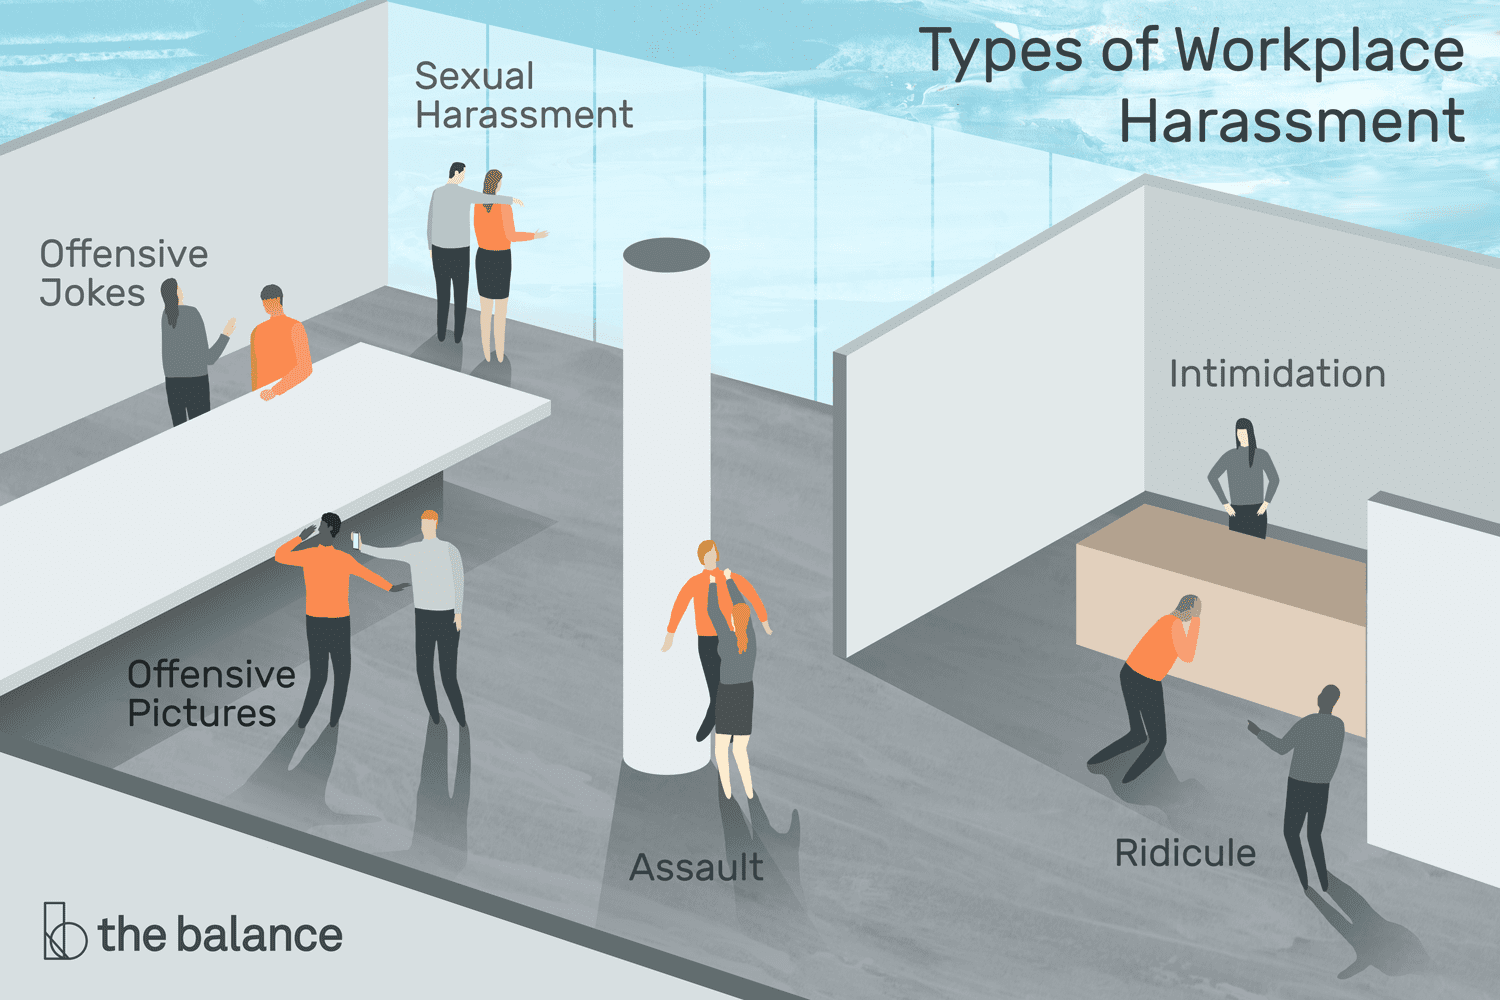 Components of Workplace Harassment